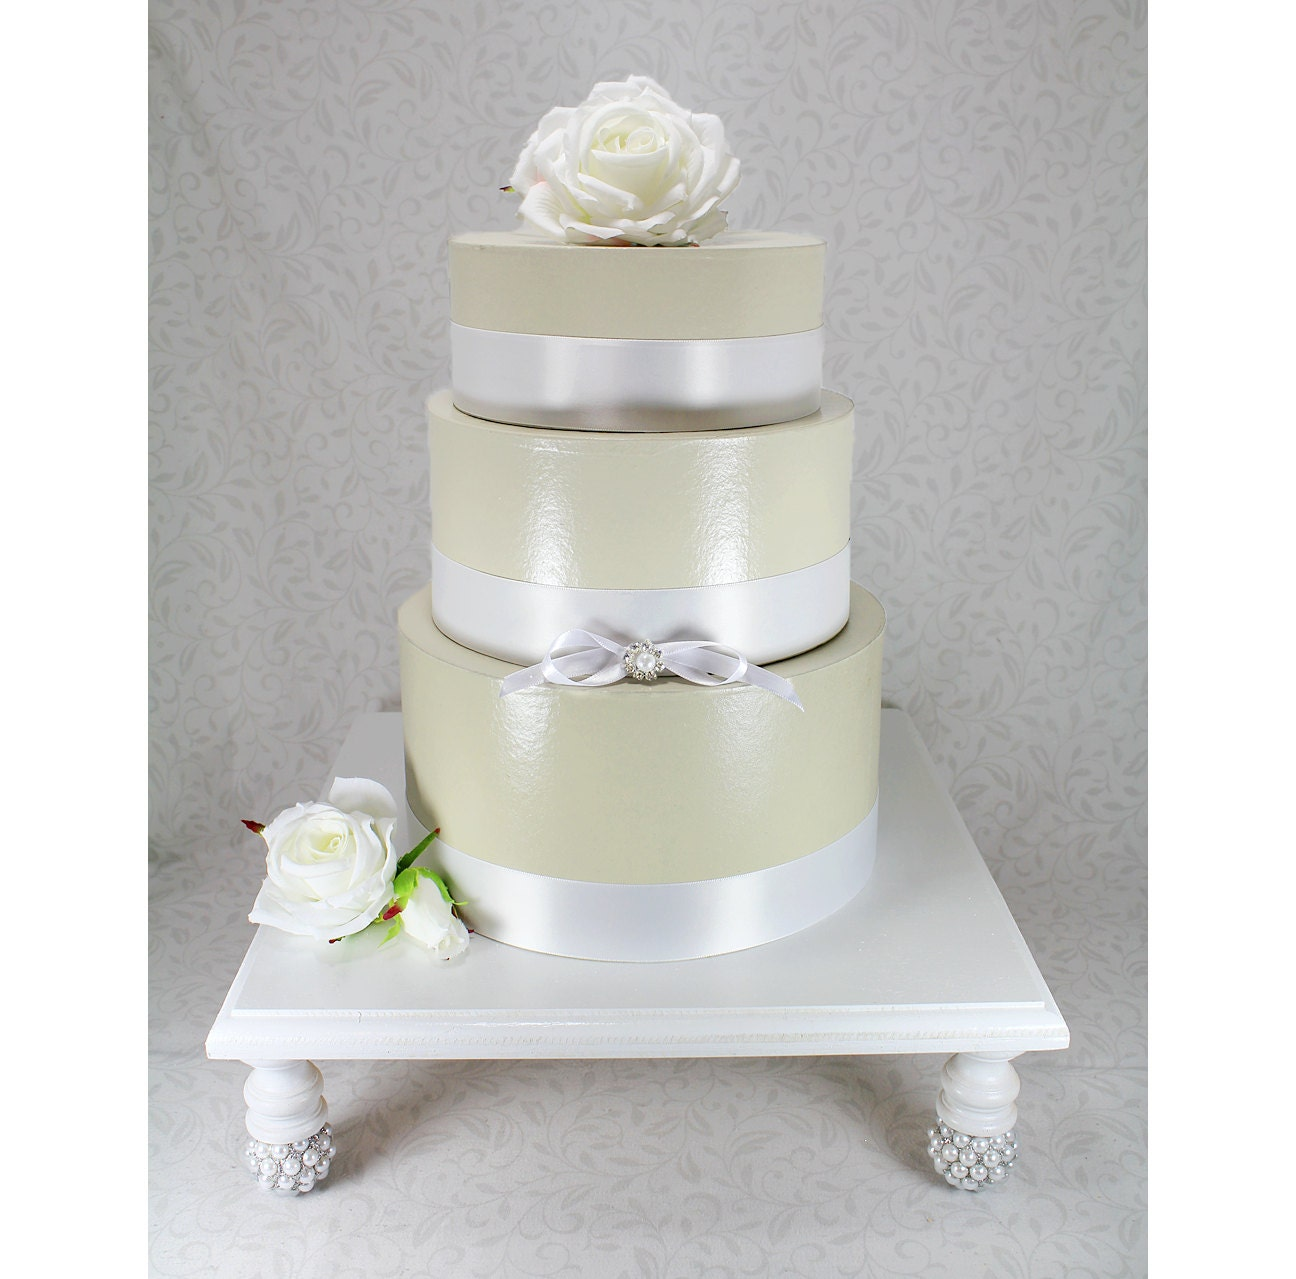 White & Silver Square Wedding Cake Stand Cupcake by